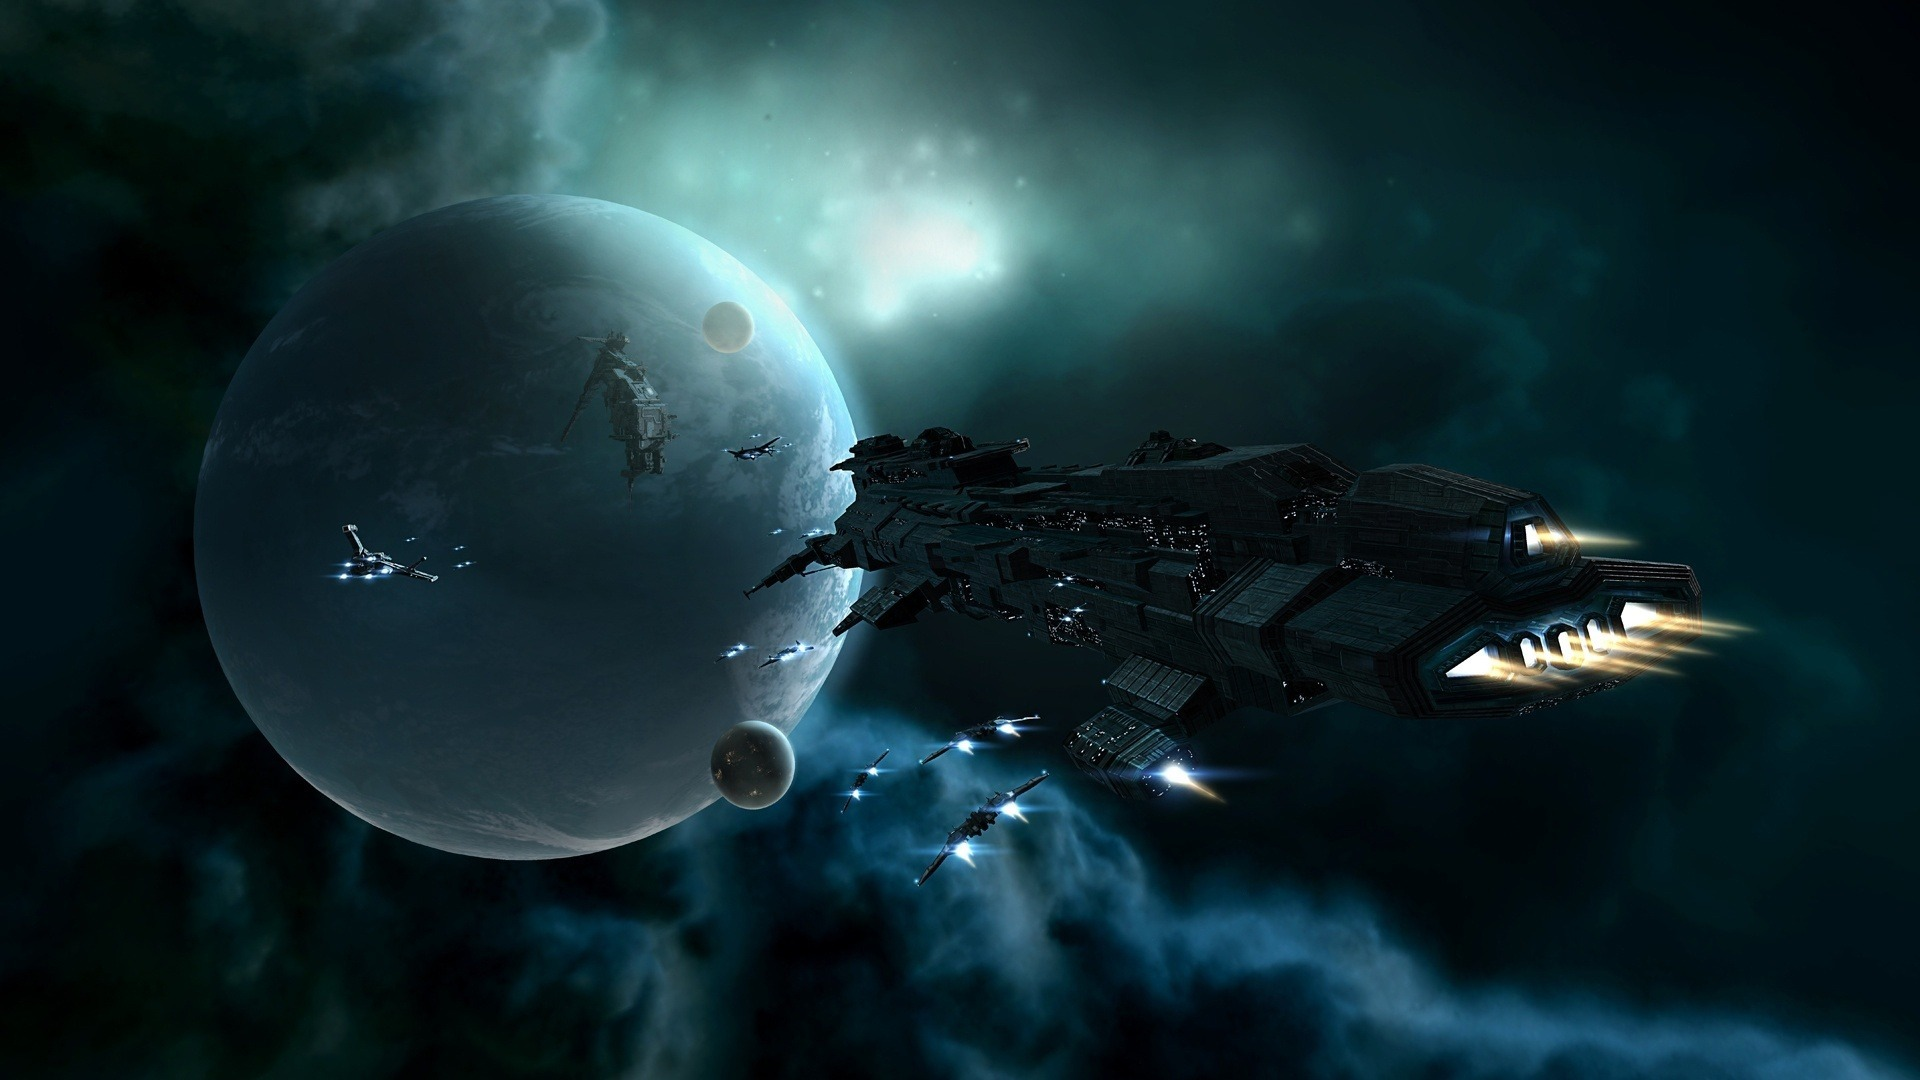 eve online planets - photo #37